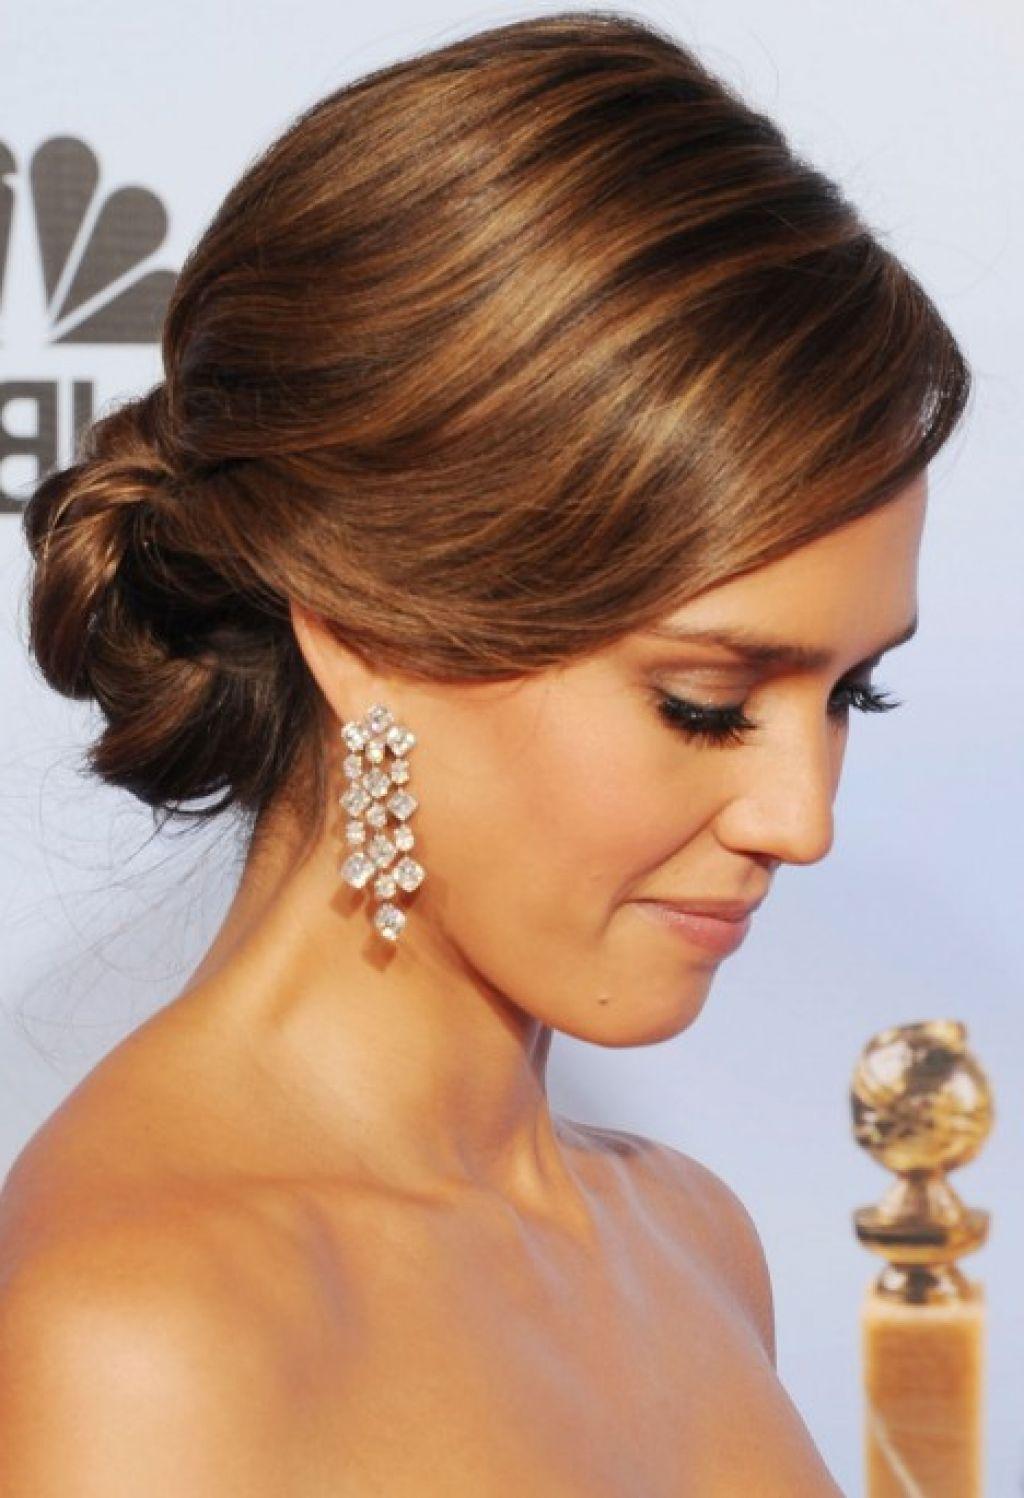 Jessica Alba Updo Hairstyles Long Hairstyles For Fine Hair Formal Long Hairstyles For Thin